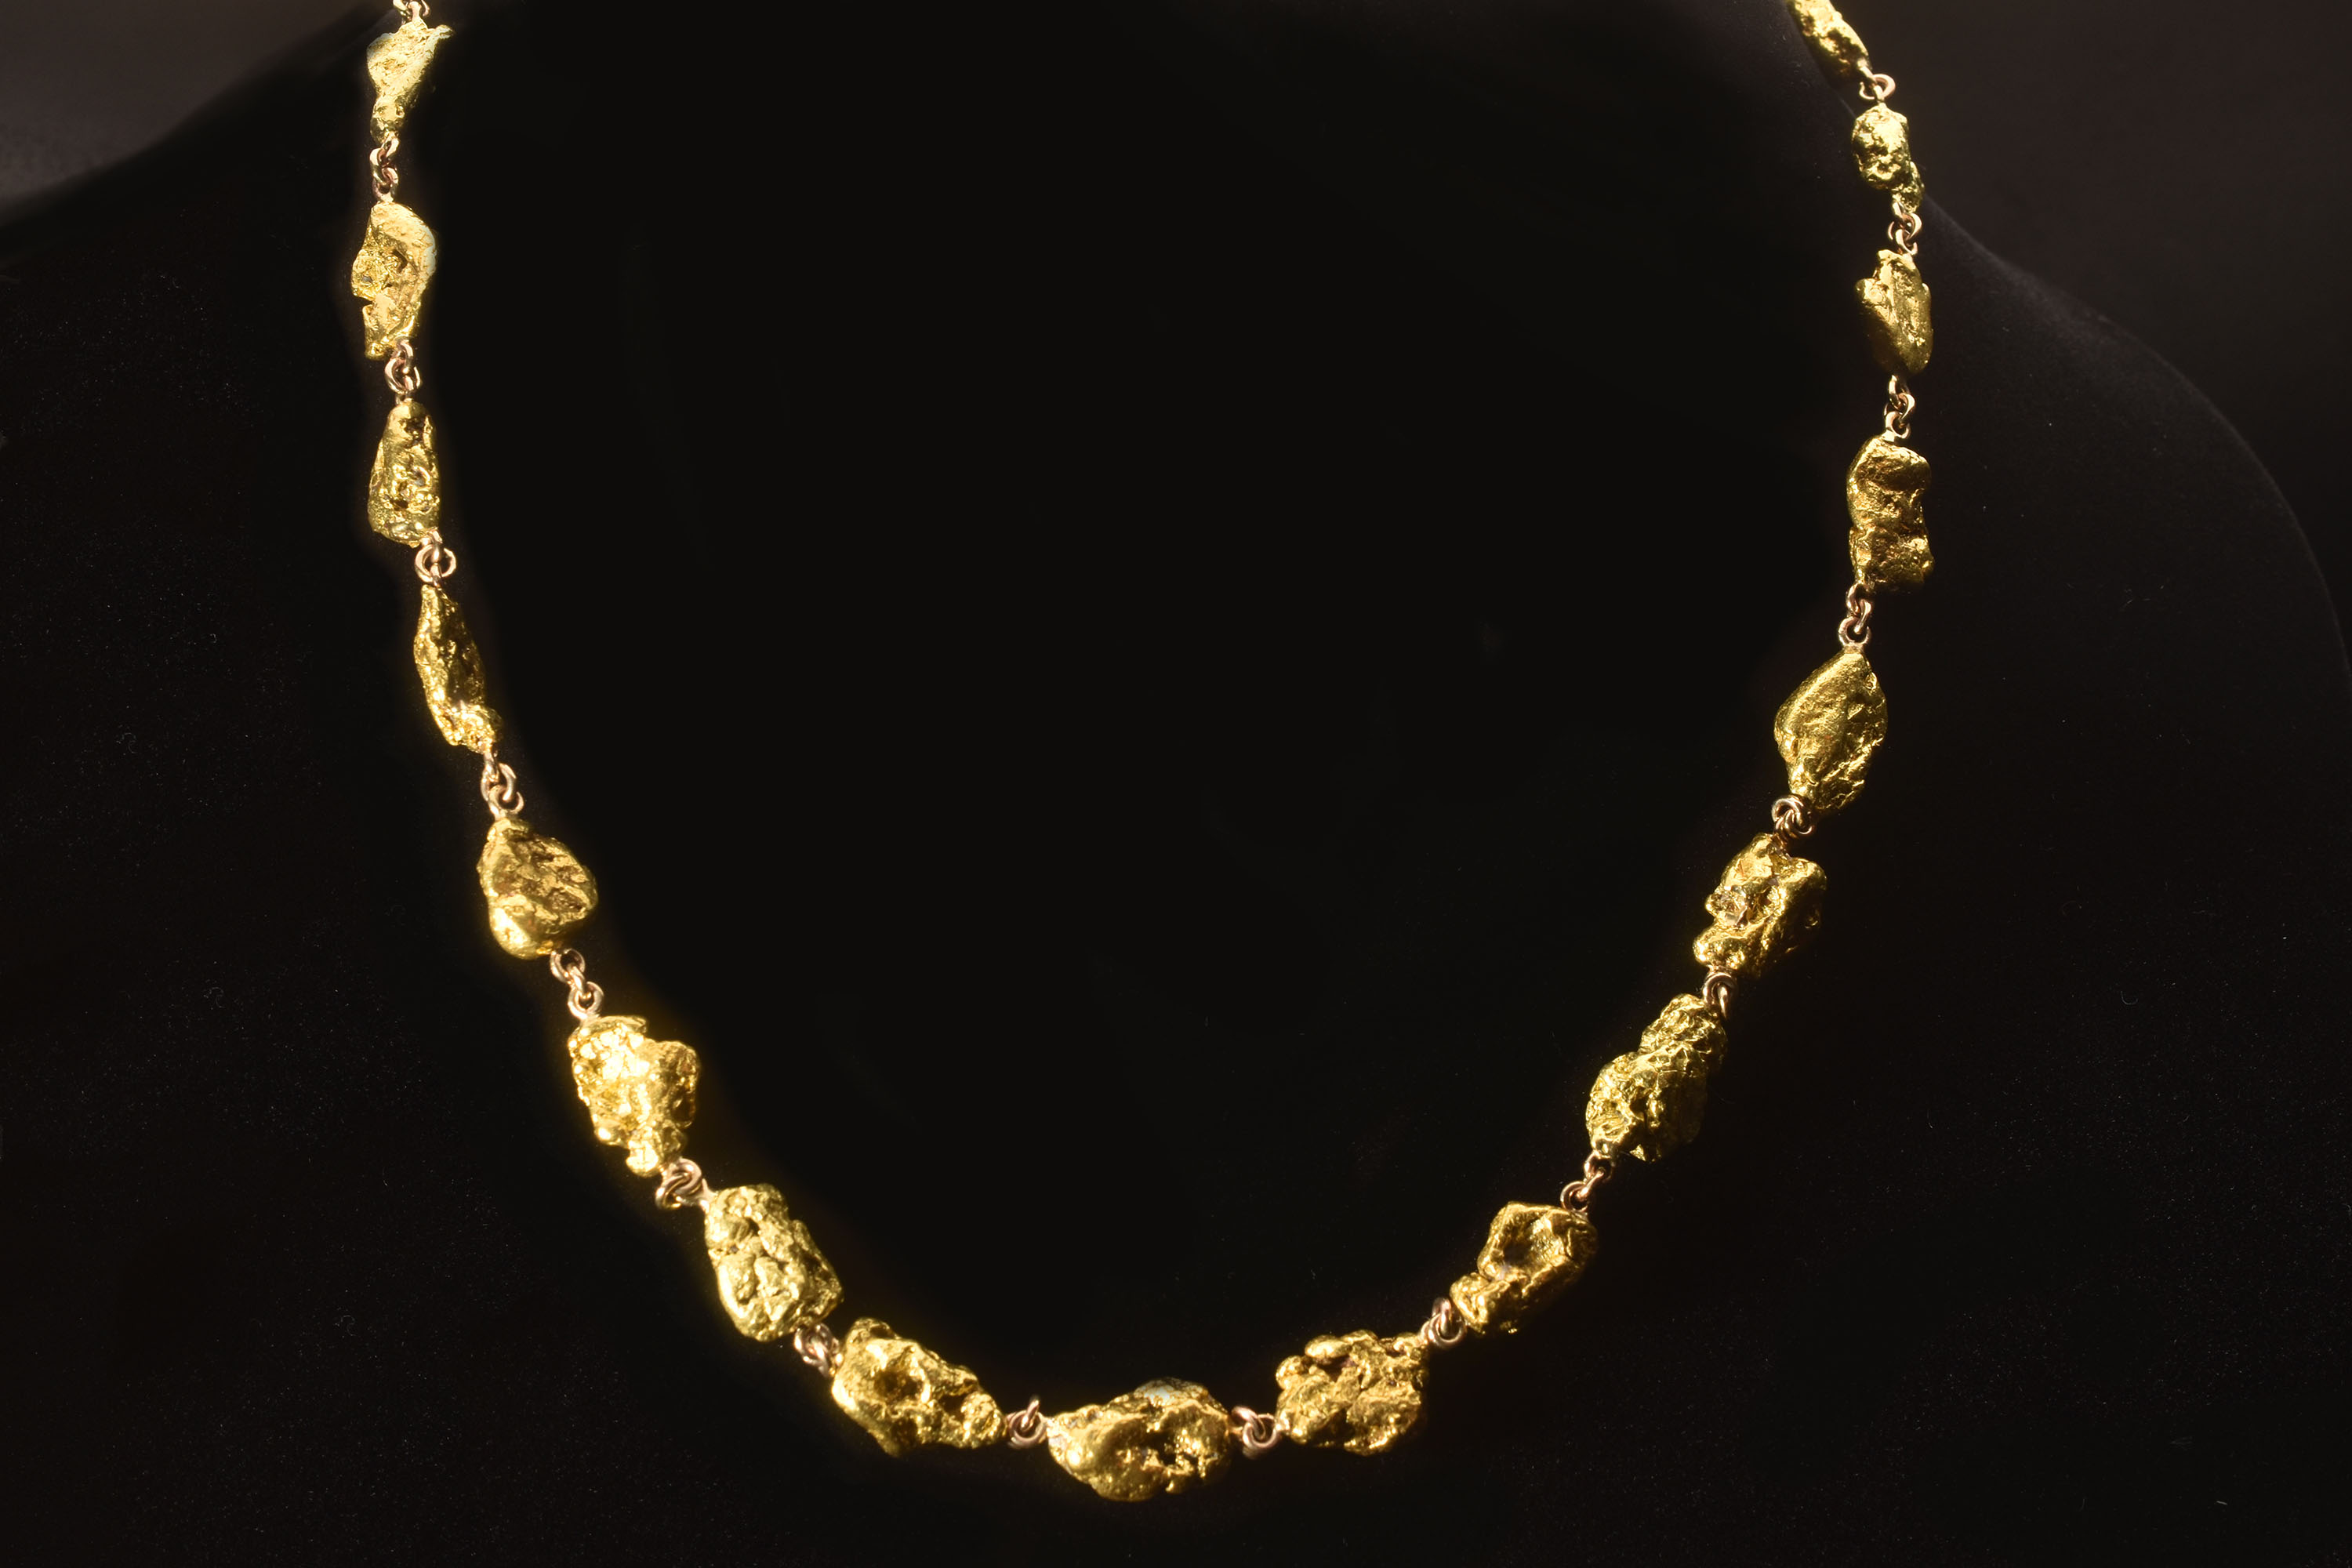 One-of-a-kind - 78 Gram Natural Alaskan Gold Nugget Necklace